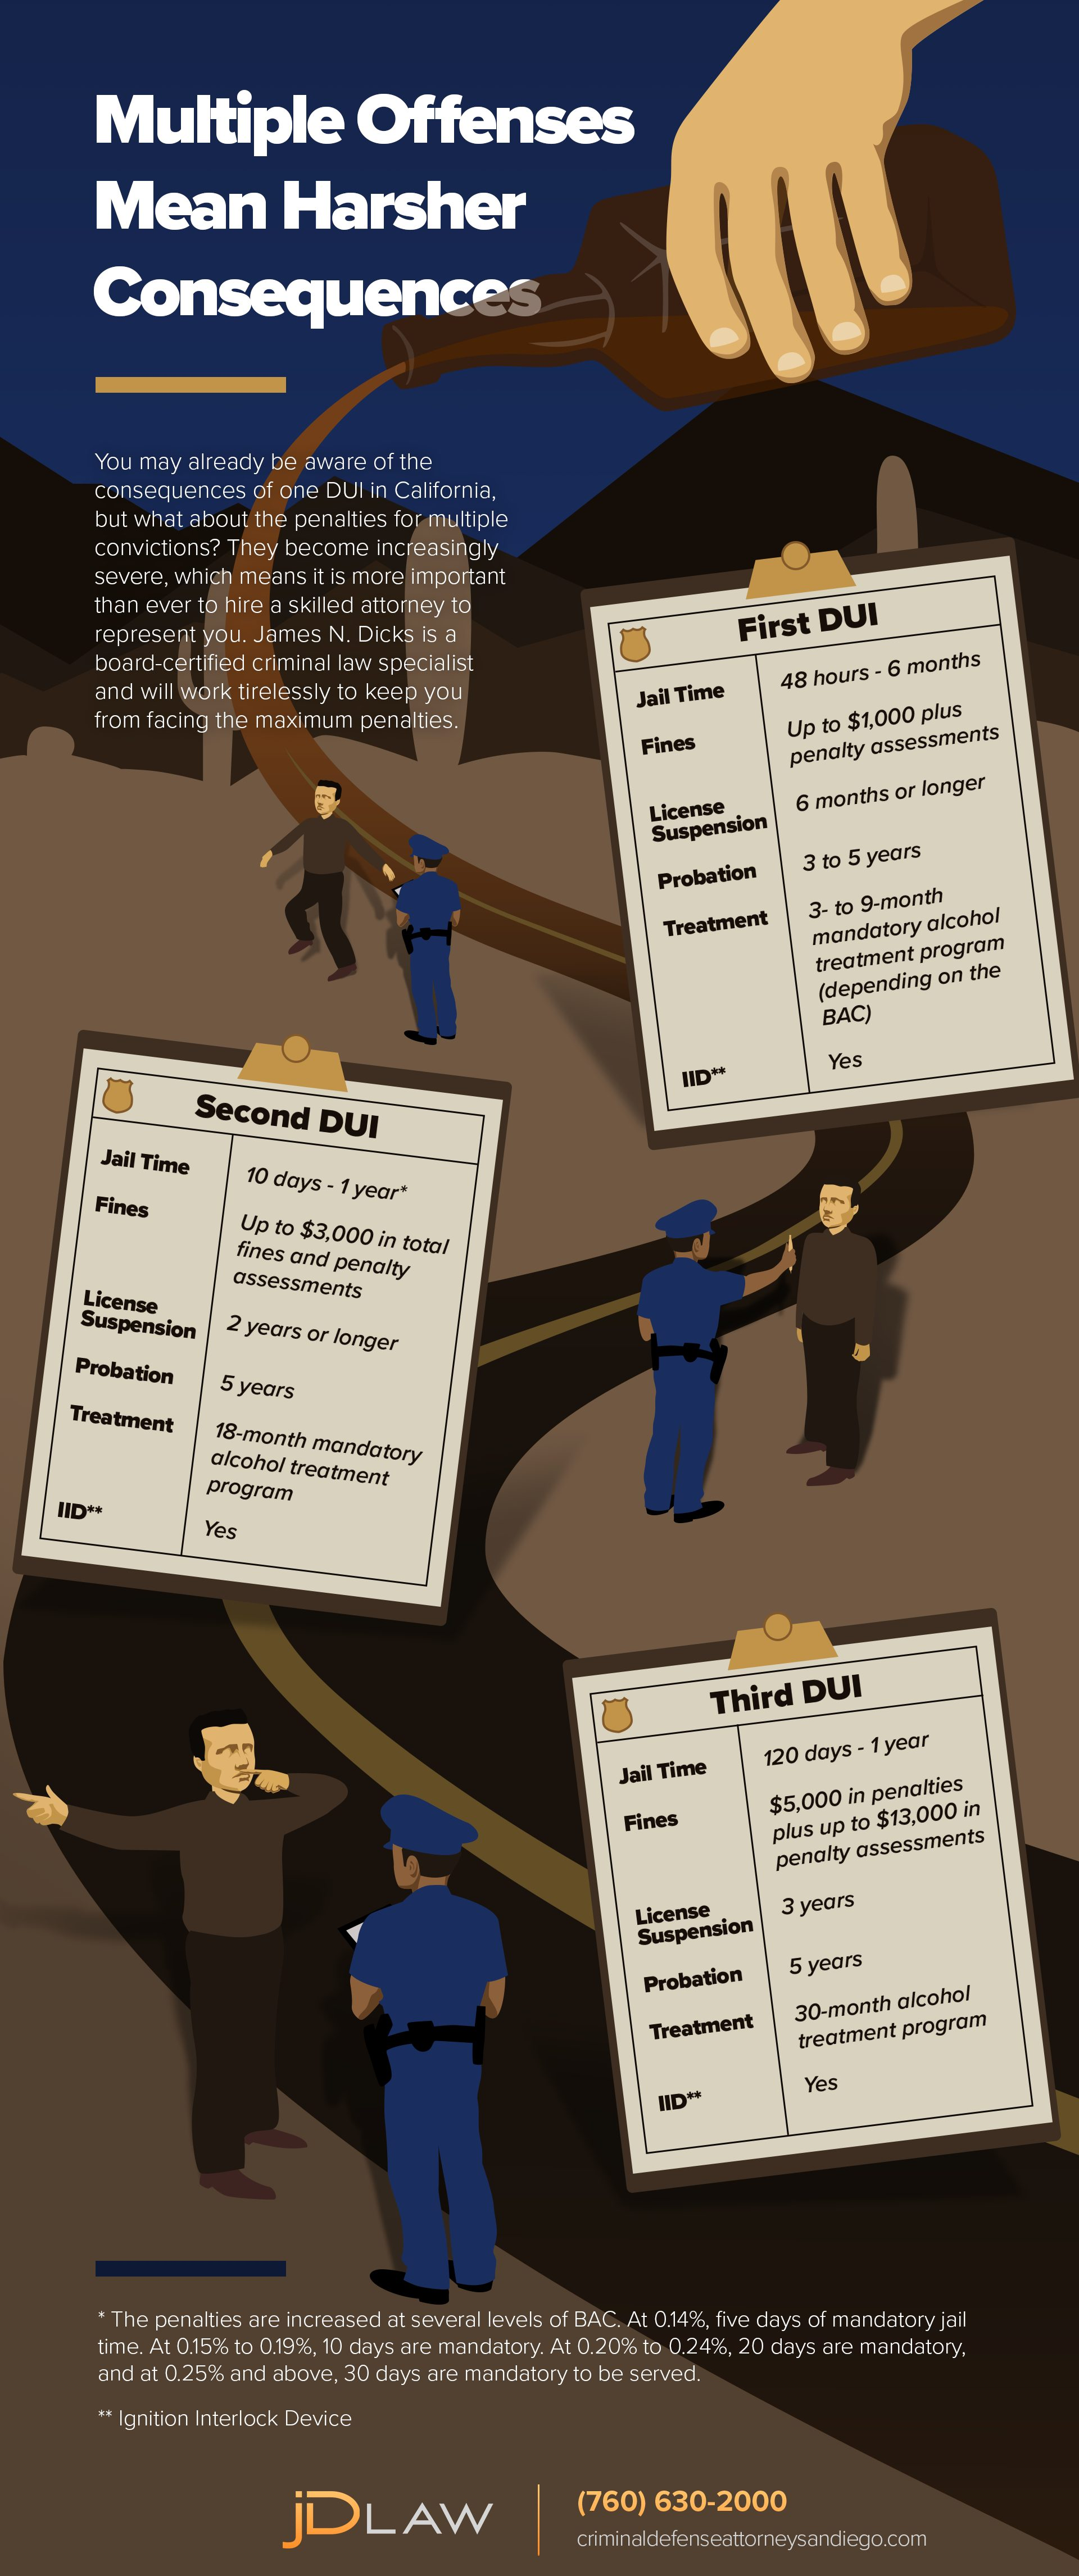 jD LAW, P.C. Presents: DUI Infographic